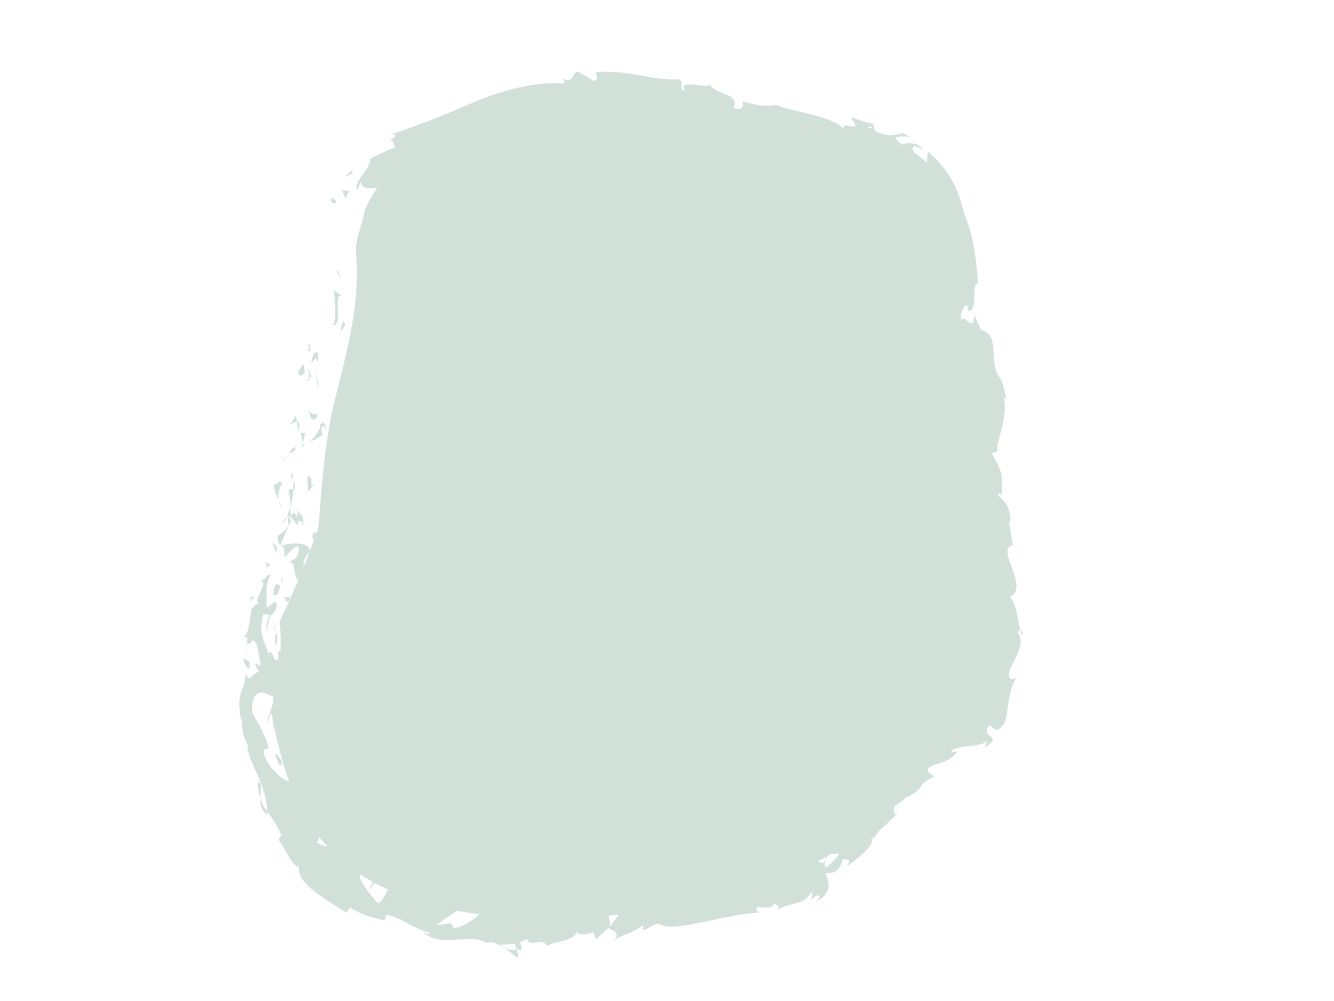 Ocean Colors Bedroom Benjamin Moore Ocean Air Pretty For An Exterior Coastal Home Too